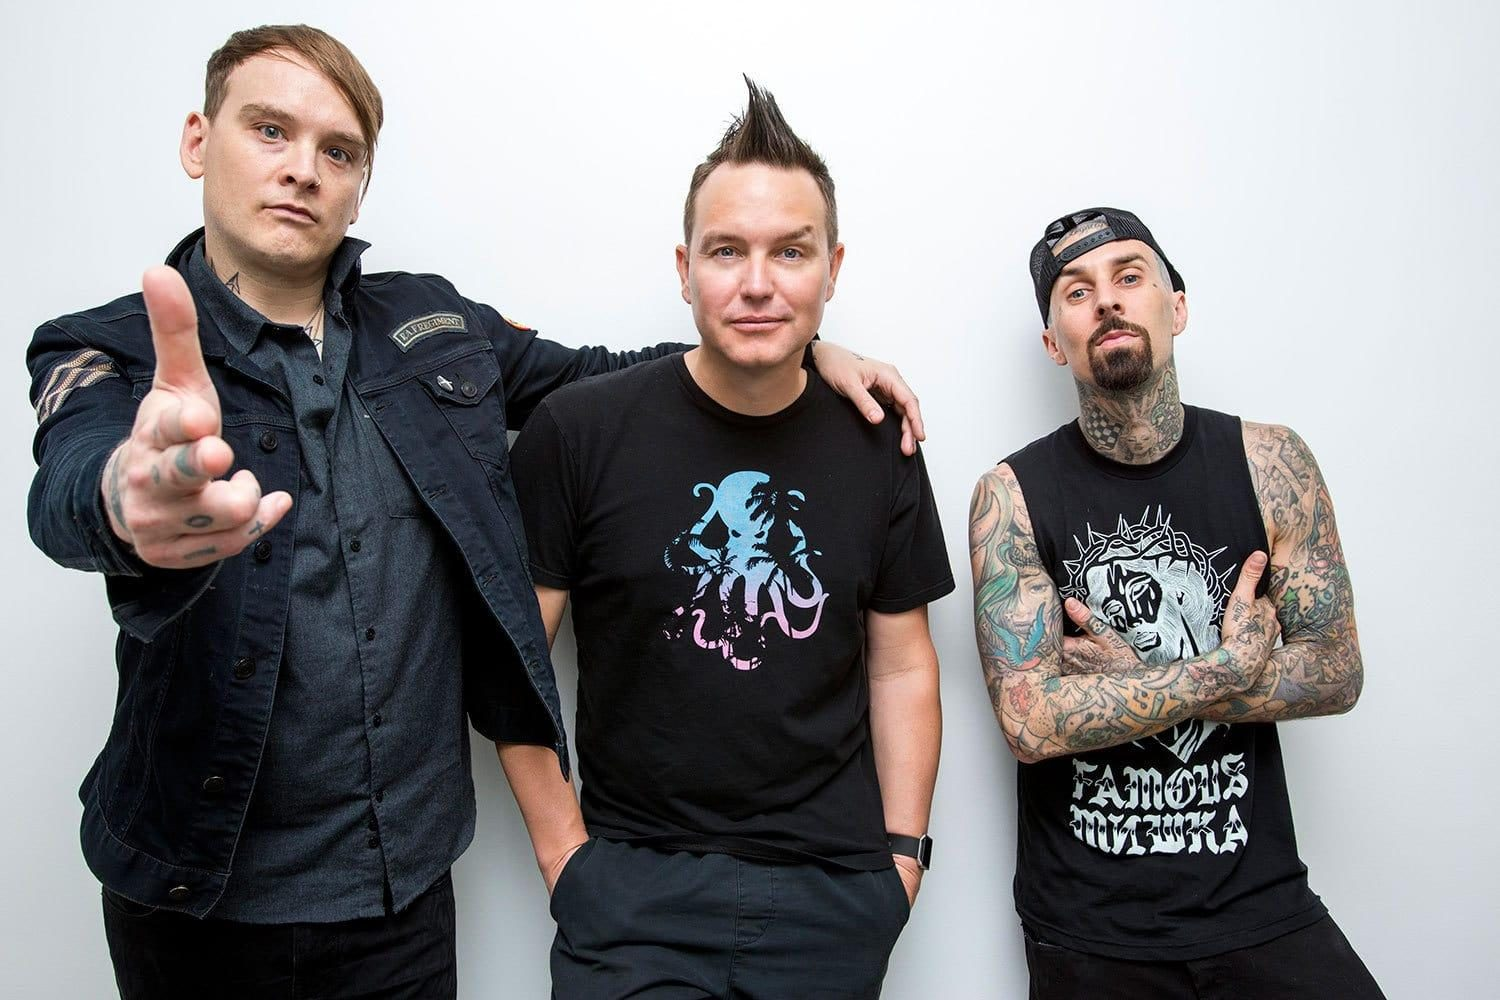 Mark Hoppus has revealed more details about new material from blink-182